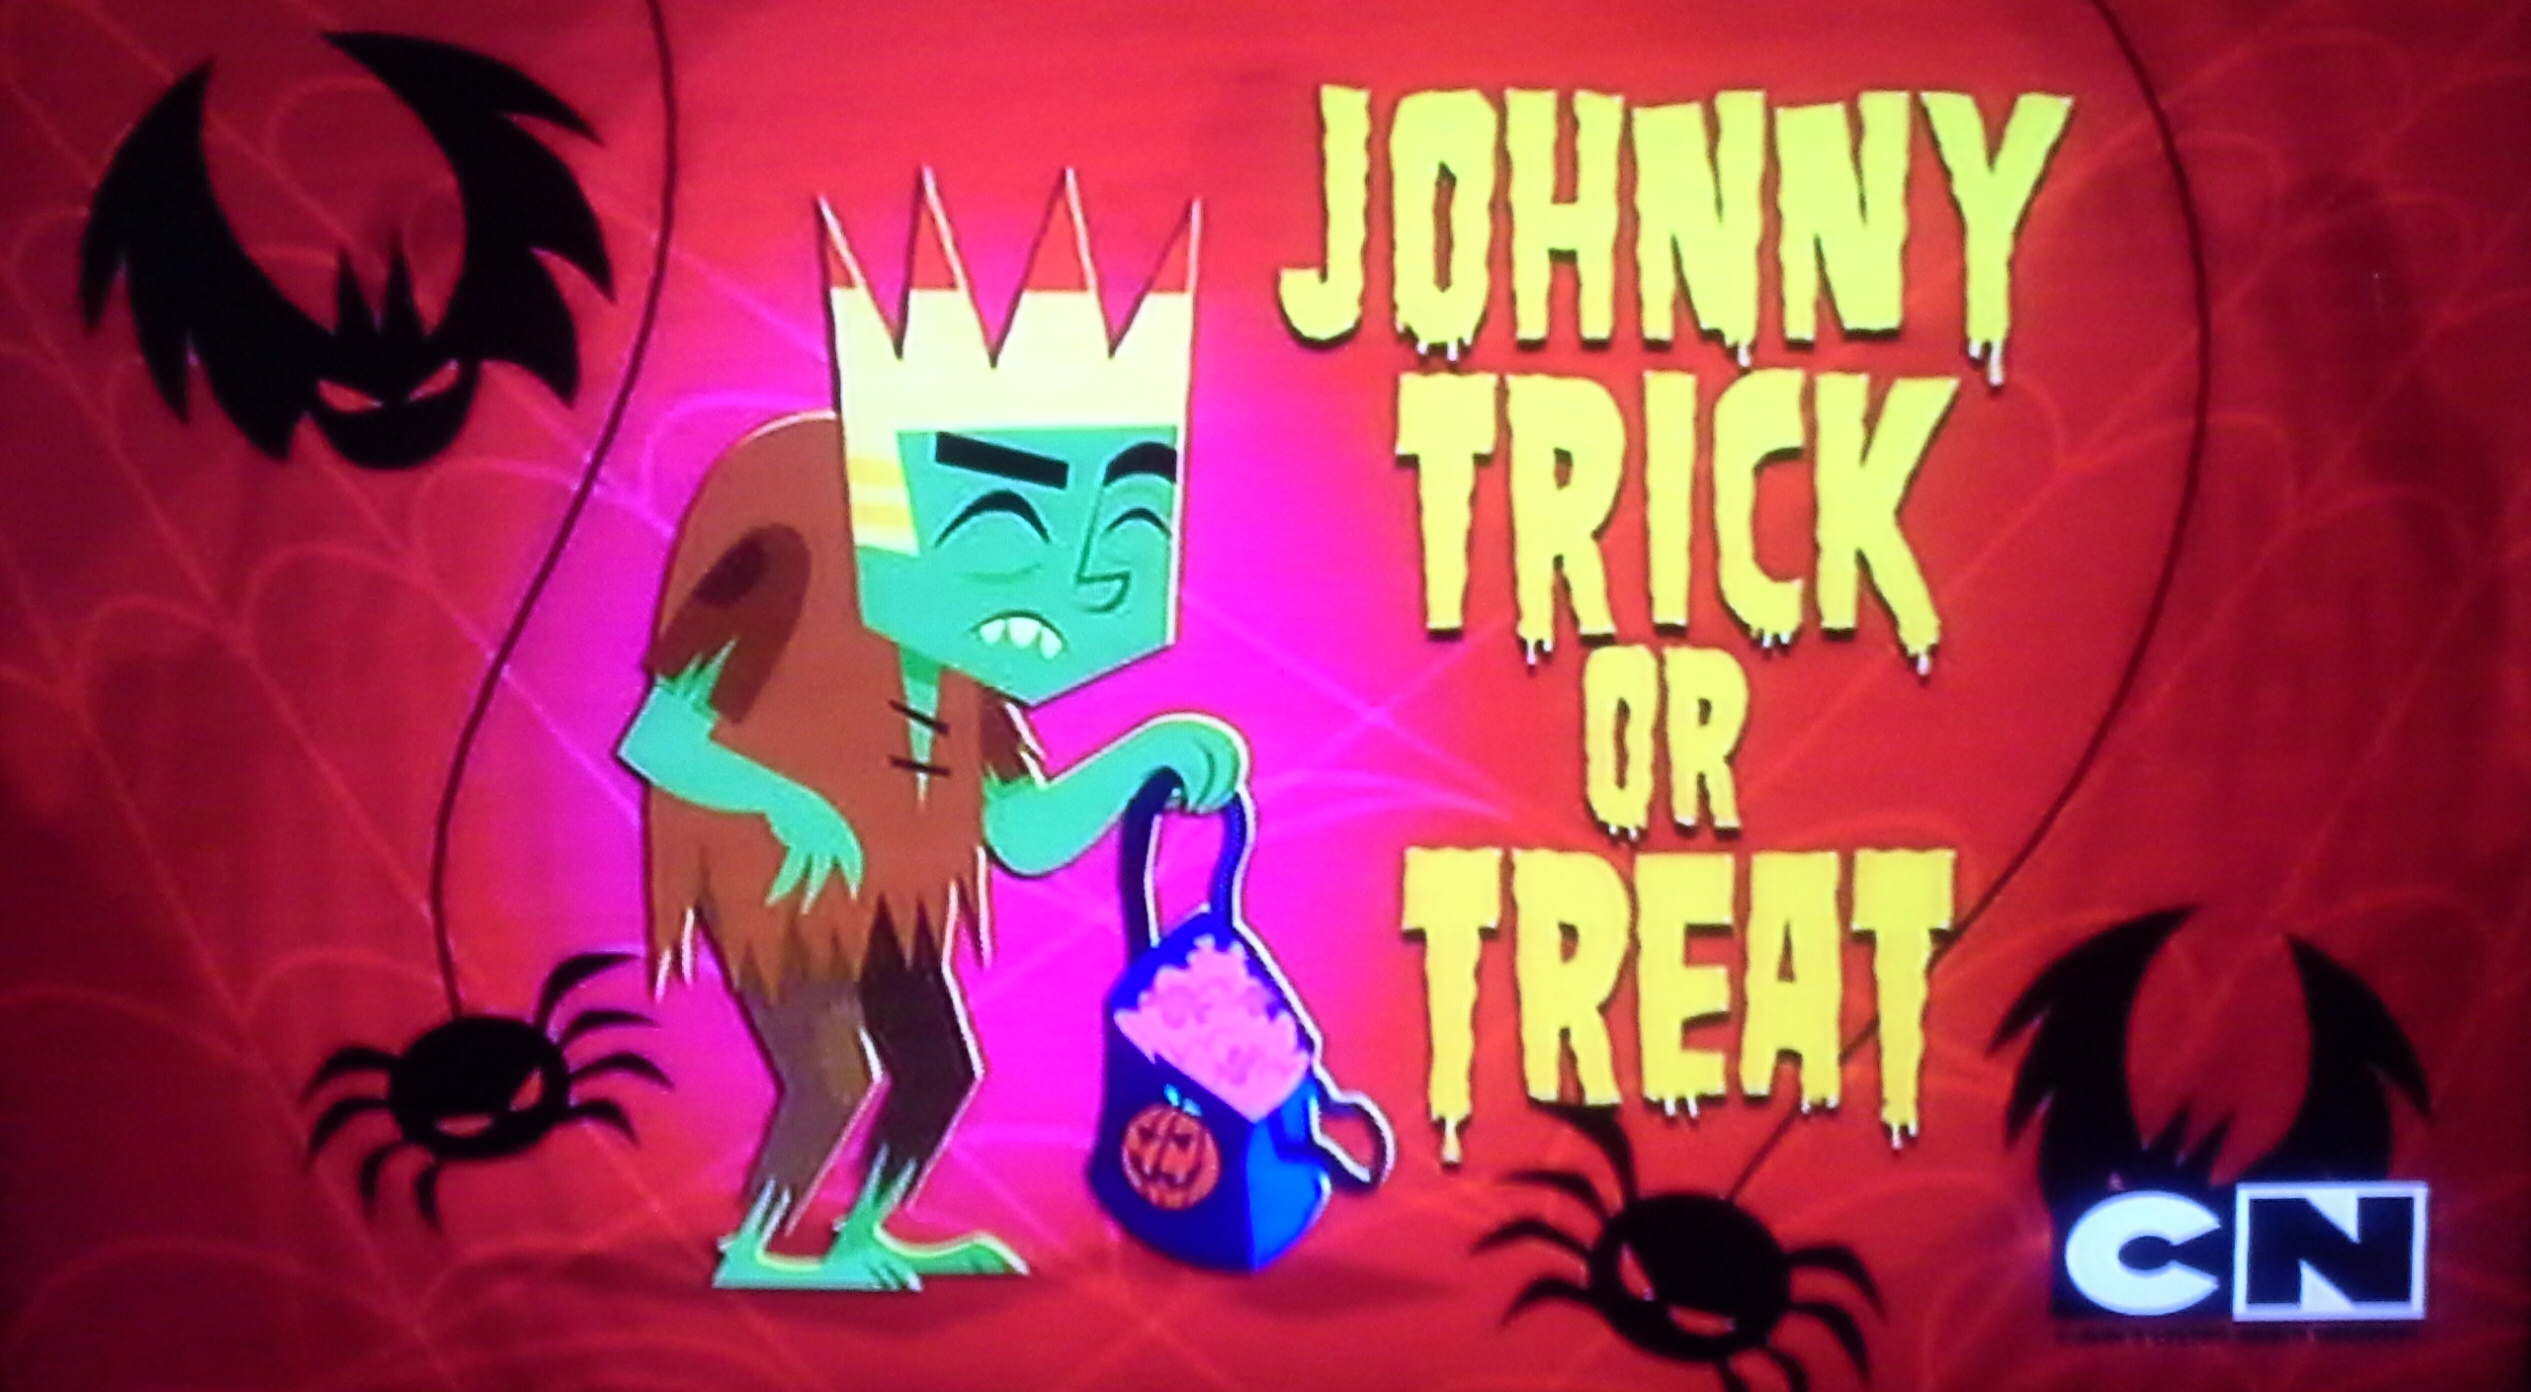 Johnny Trick or Treat